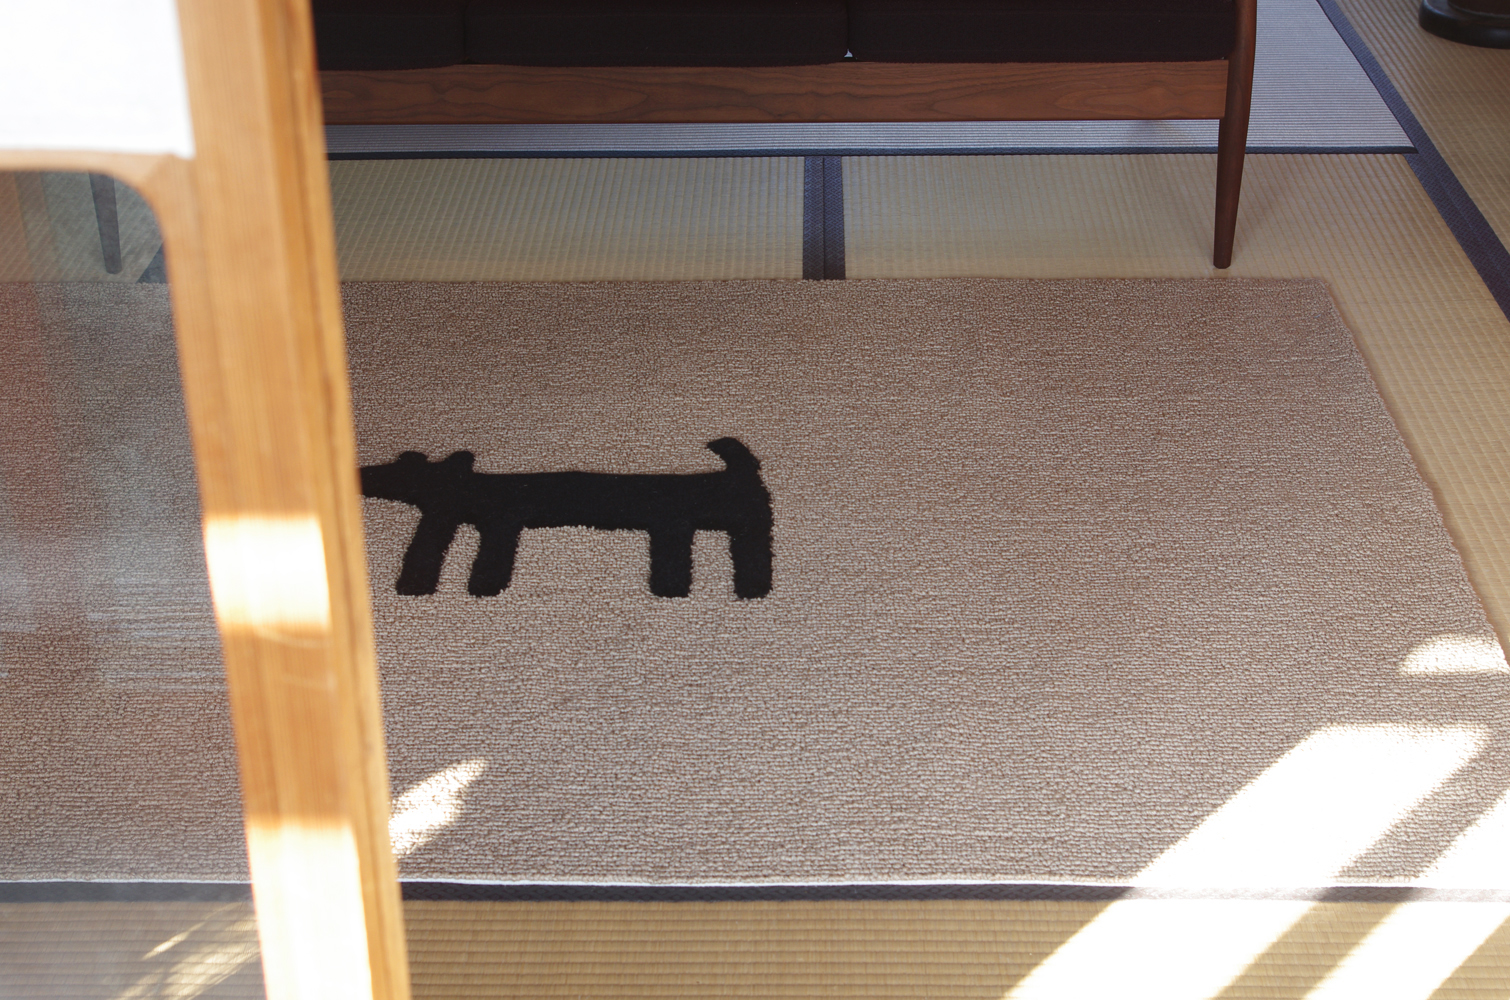 Fstyle rugmat HOUSE-5